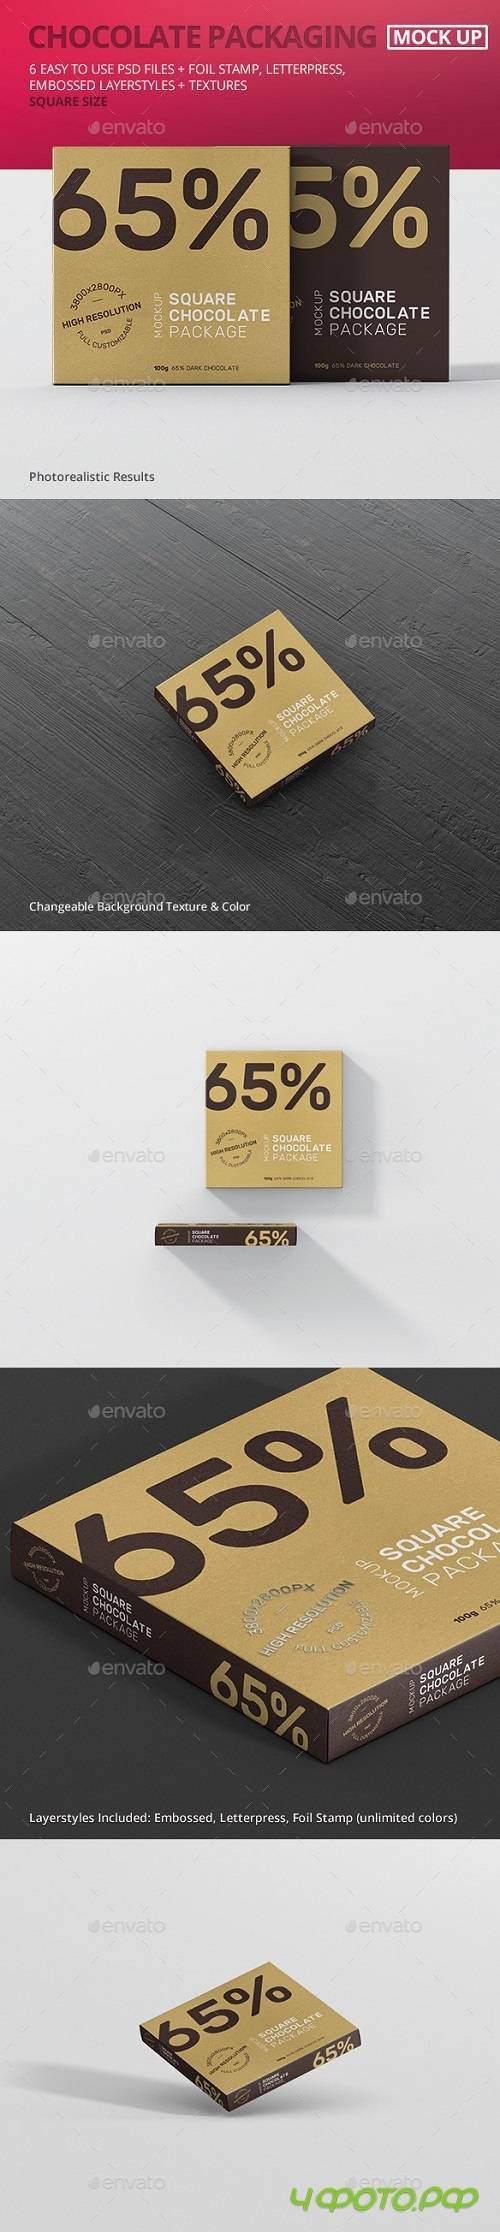 Chocolate Packaging Mockup Square Size 19418009